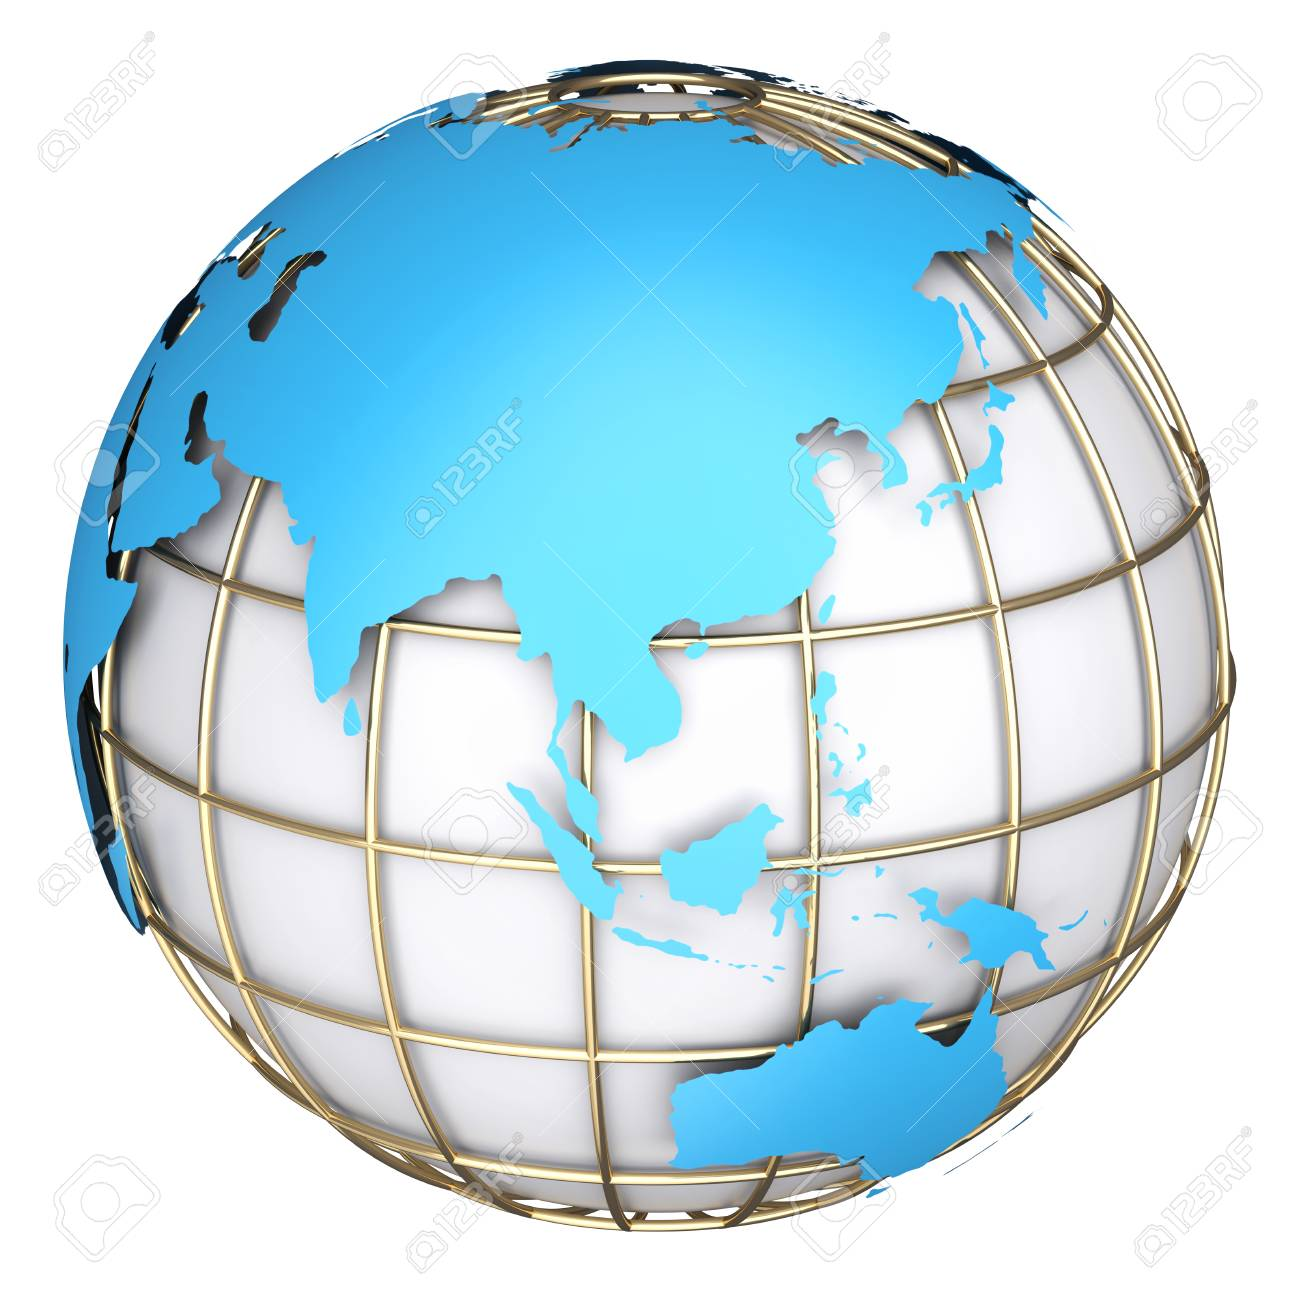 earth world mapaustralia and asia on a planet globe 3d illustration stock illustration